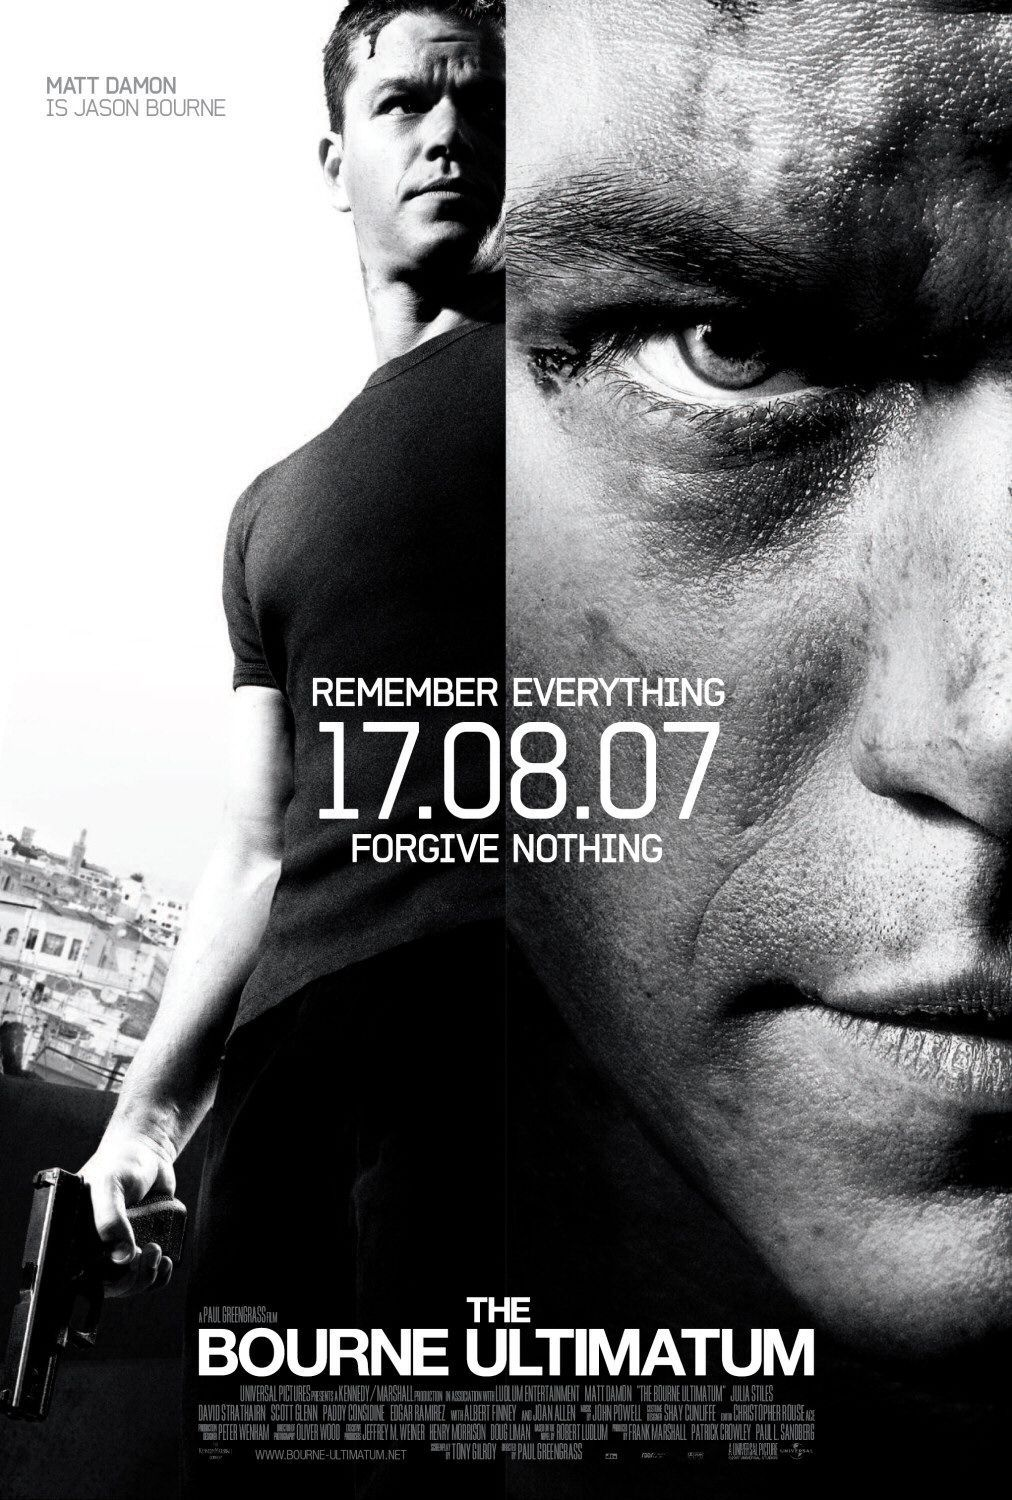 The Bourne Ultimatum with Matt Damon - one of the trilogy (this one's not as good as the first, however awesome) ADULT ONLY due to violence - #movie #action #suspense